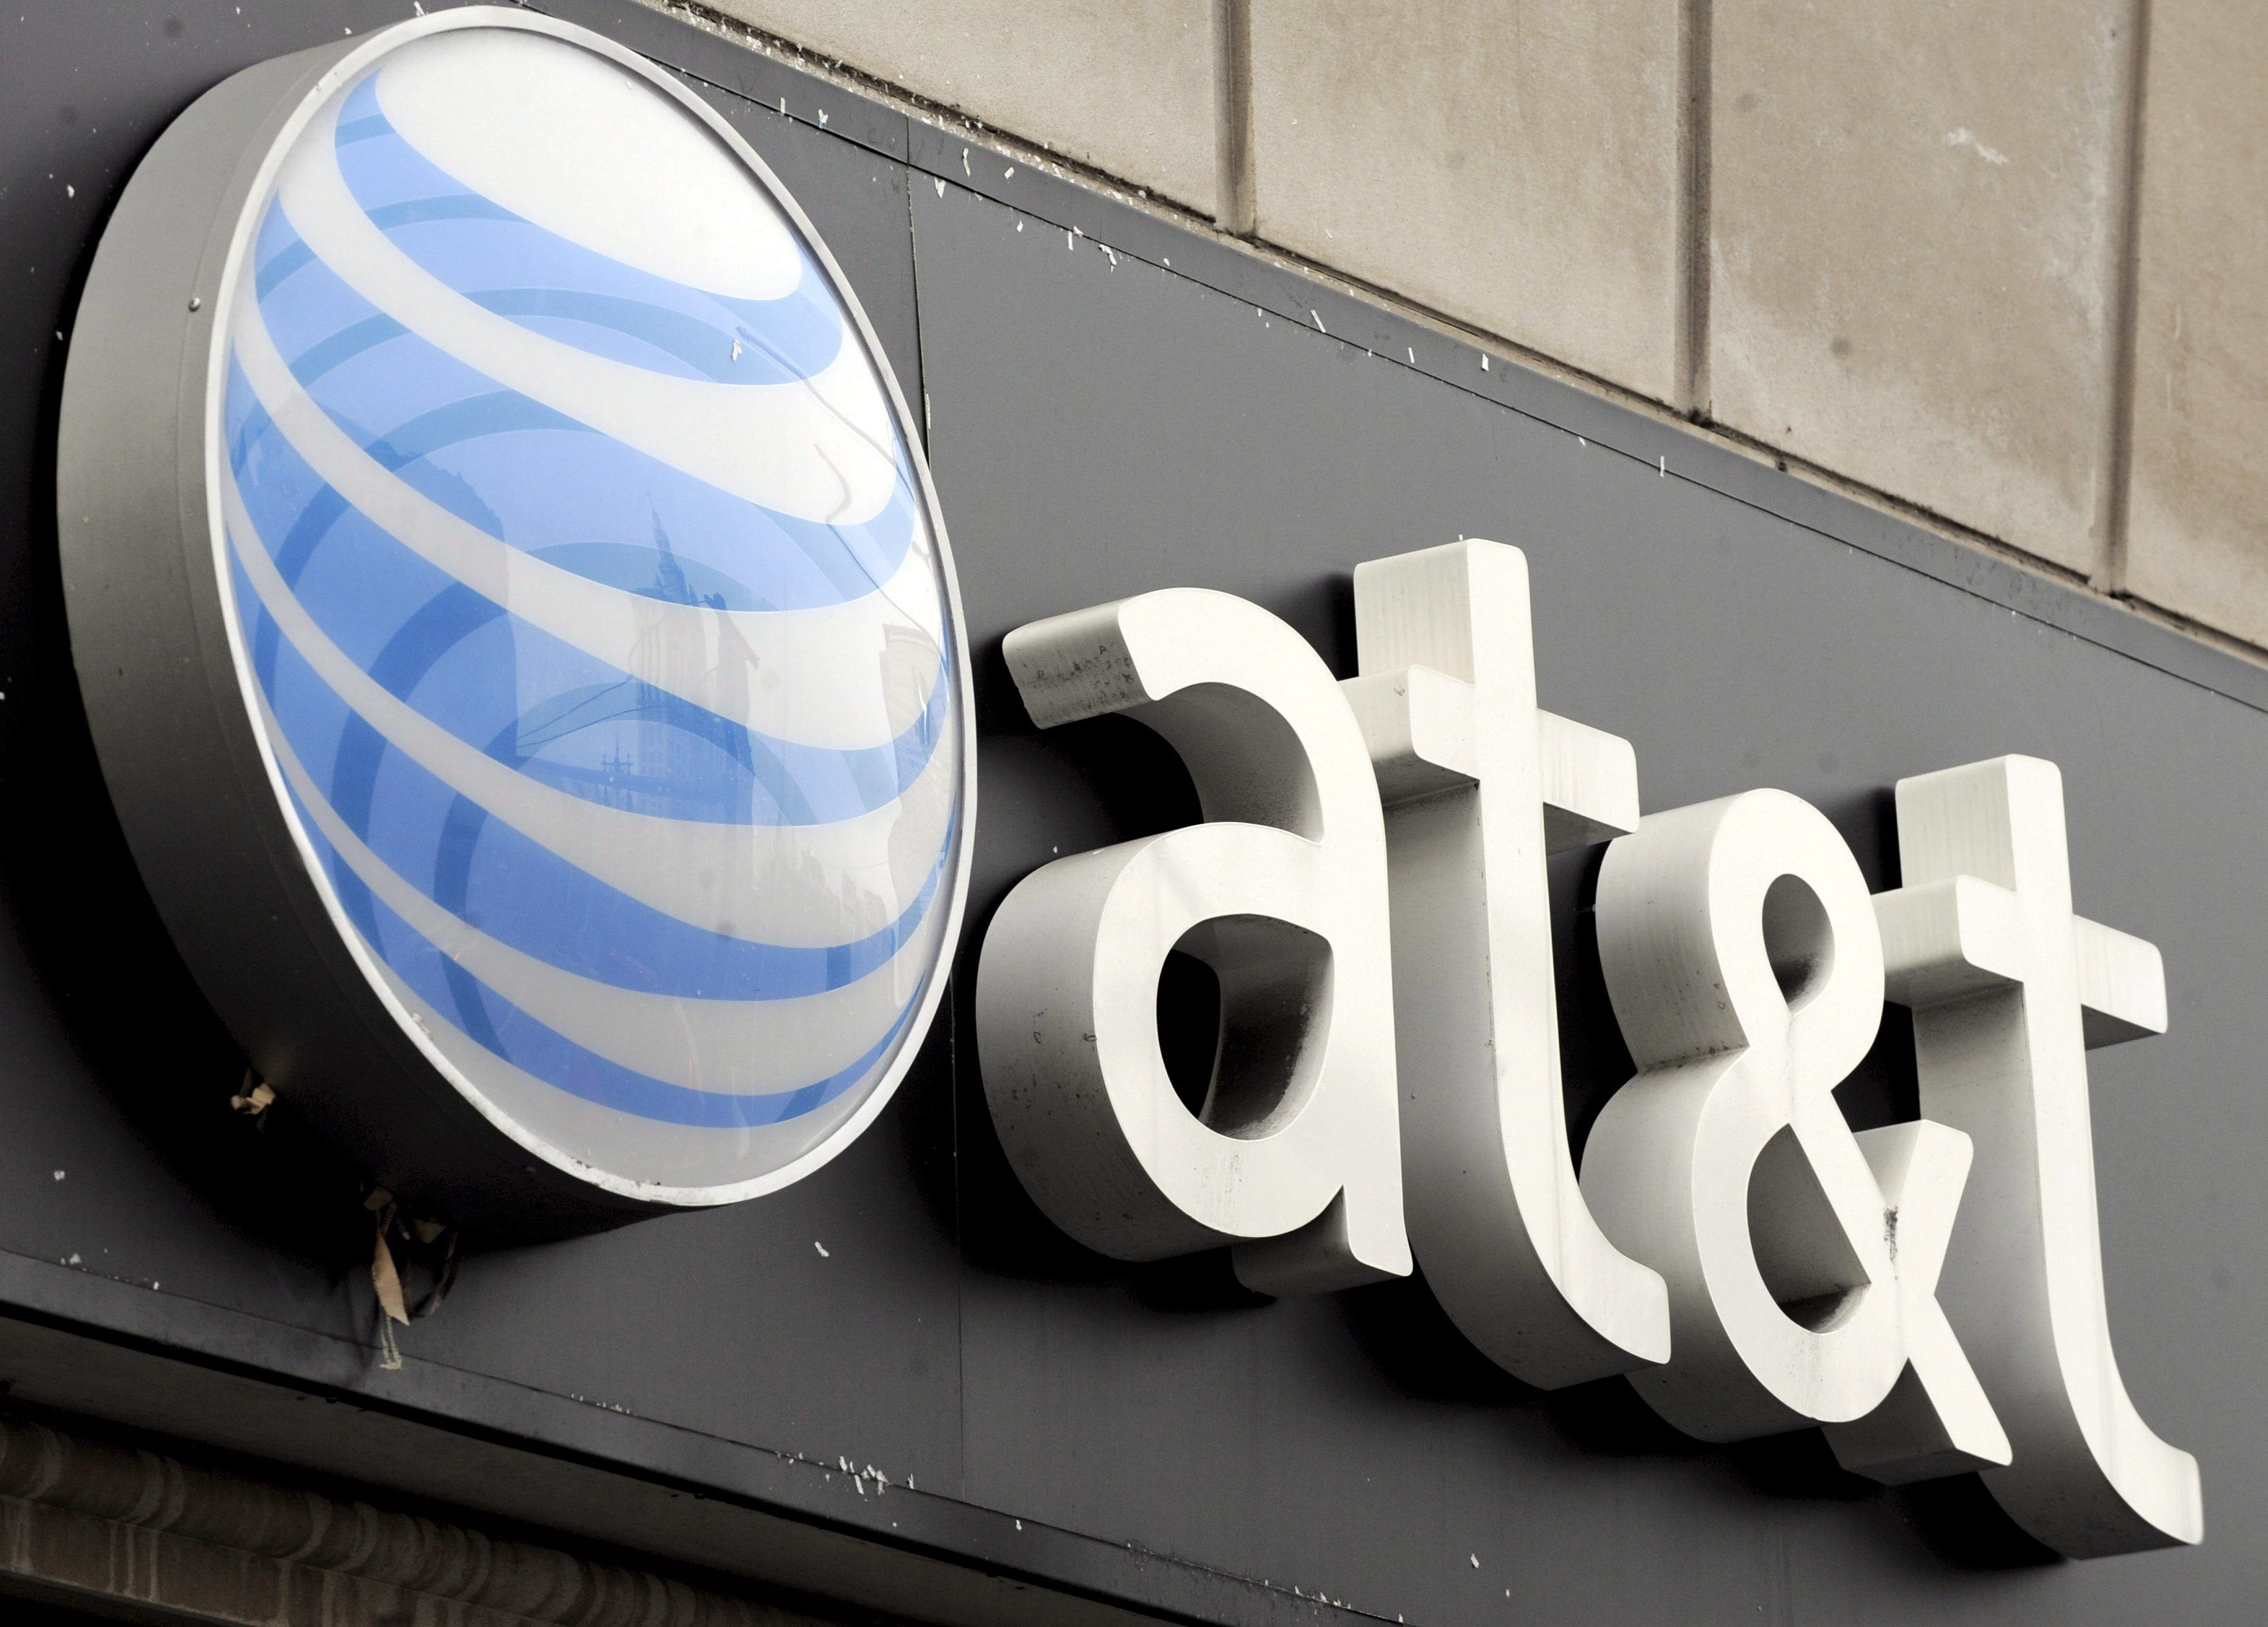 Att in advanced talks to buy time warner banking source att in advanced talks to buy time warner banking source buycottarizona